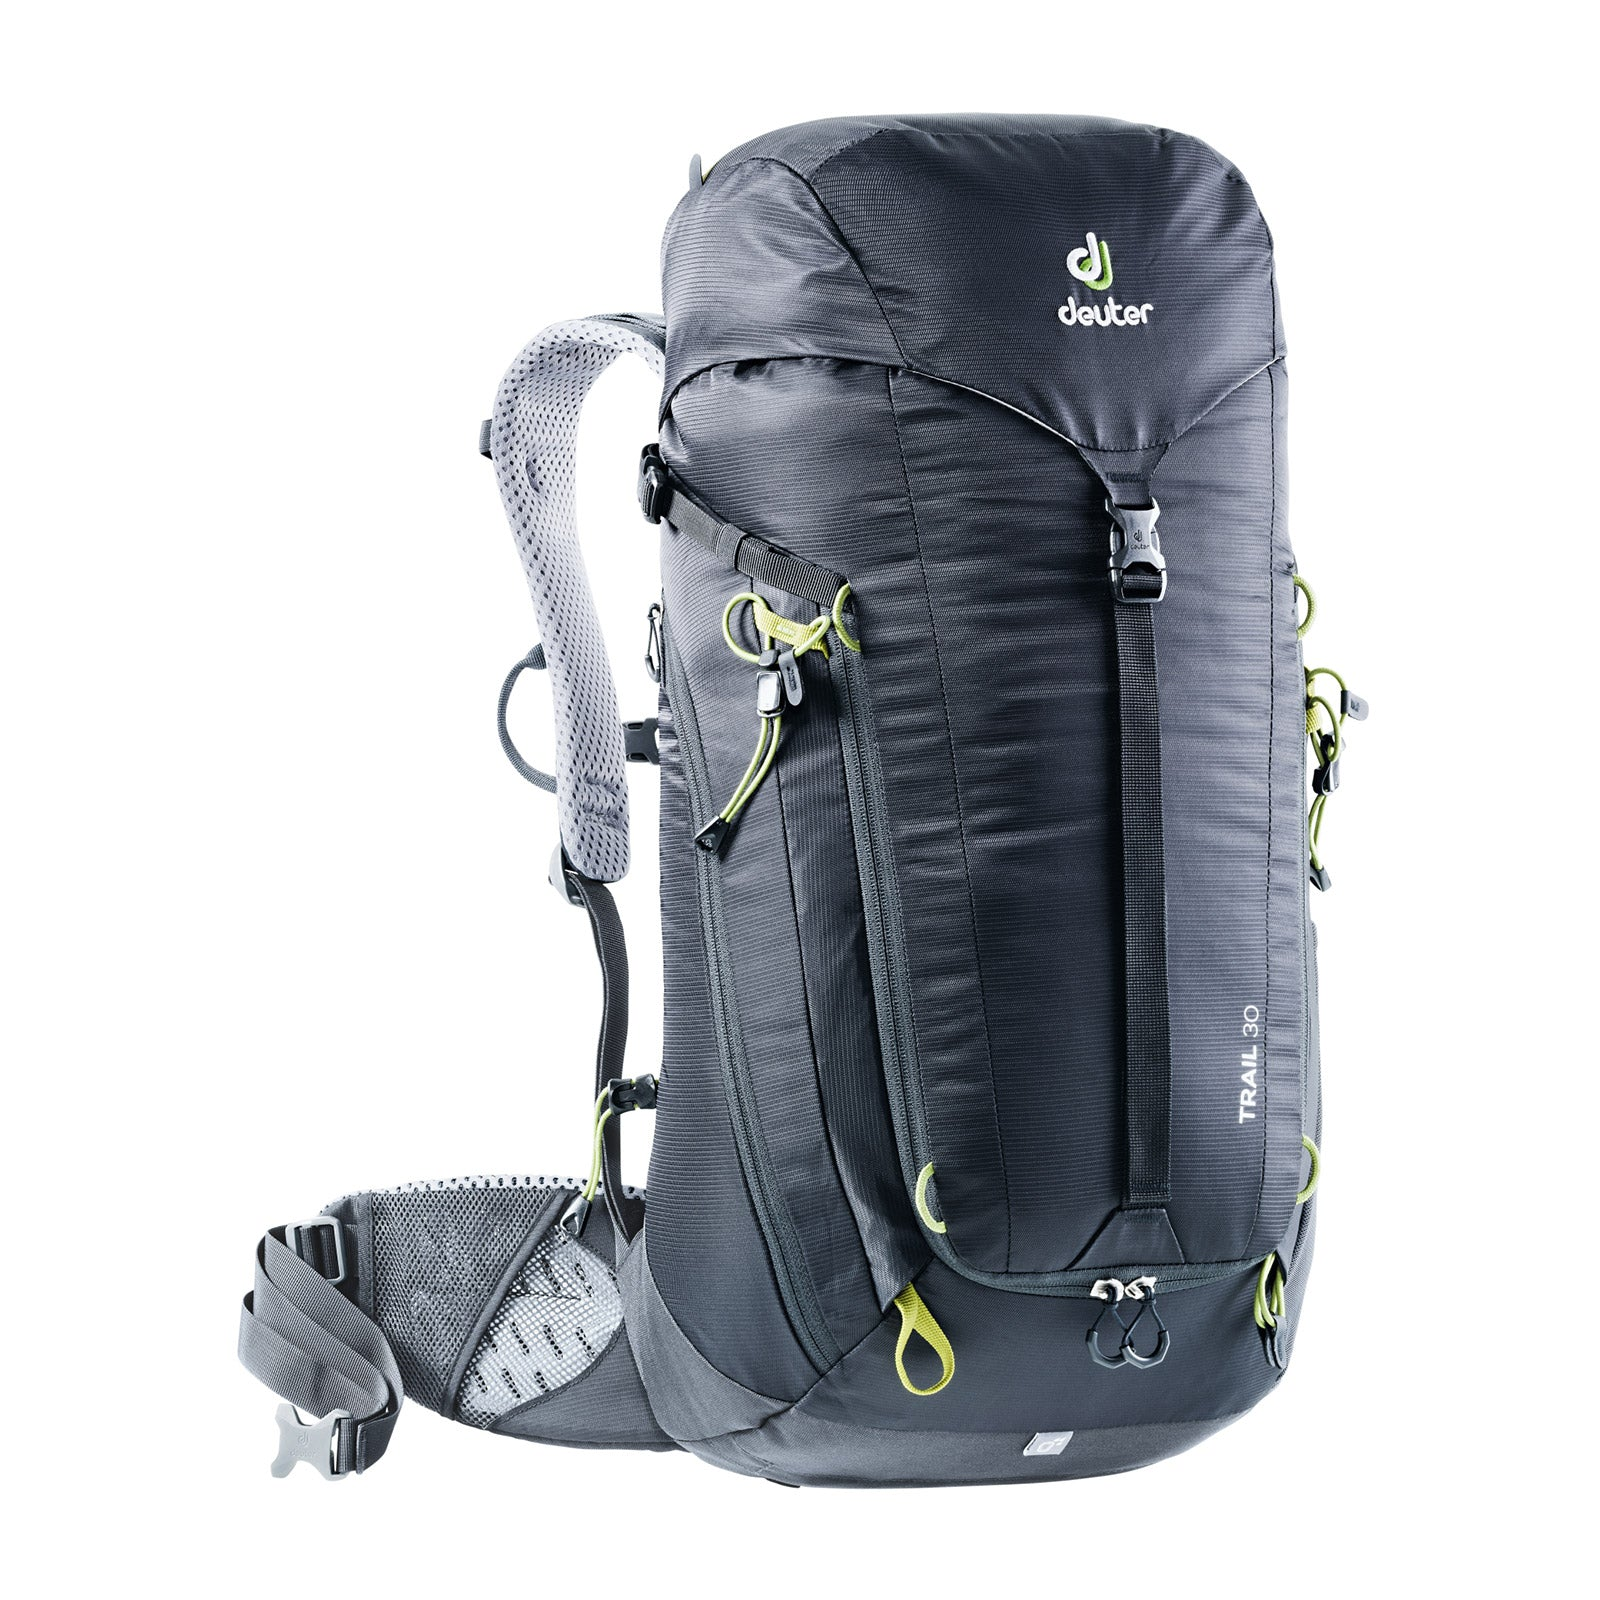 deuter trail 30 backpack front view in color dark grey with lime green details